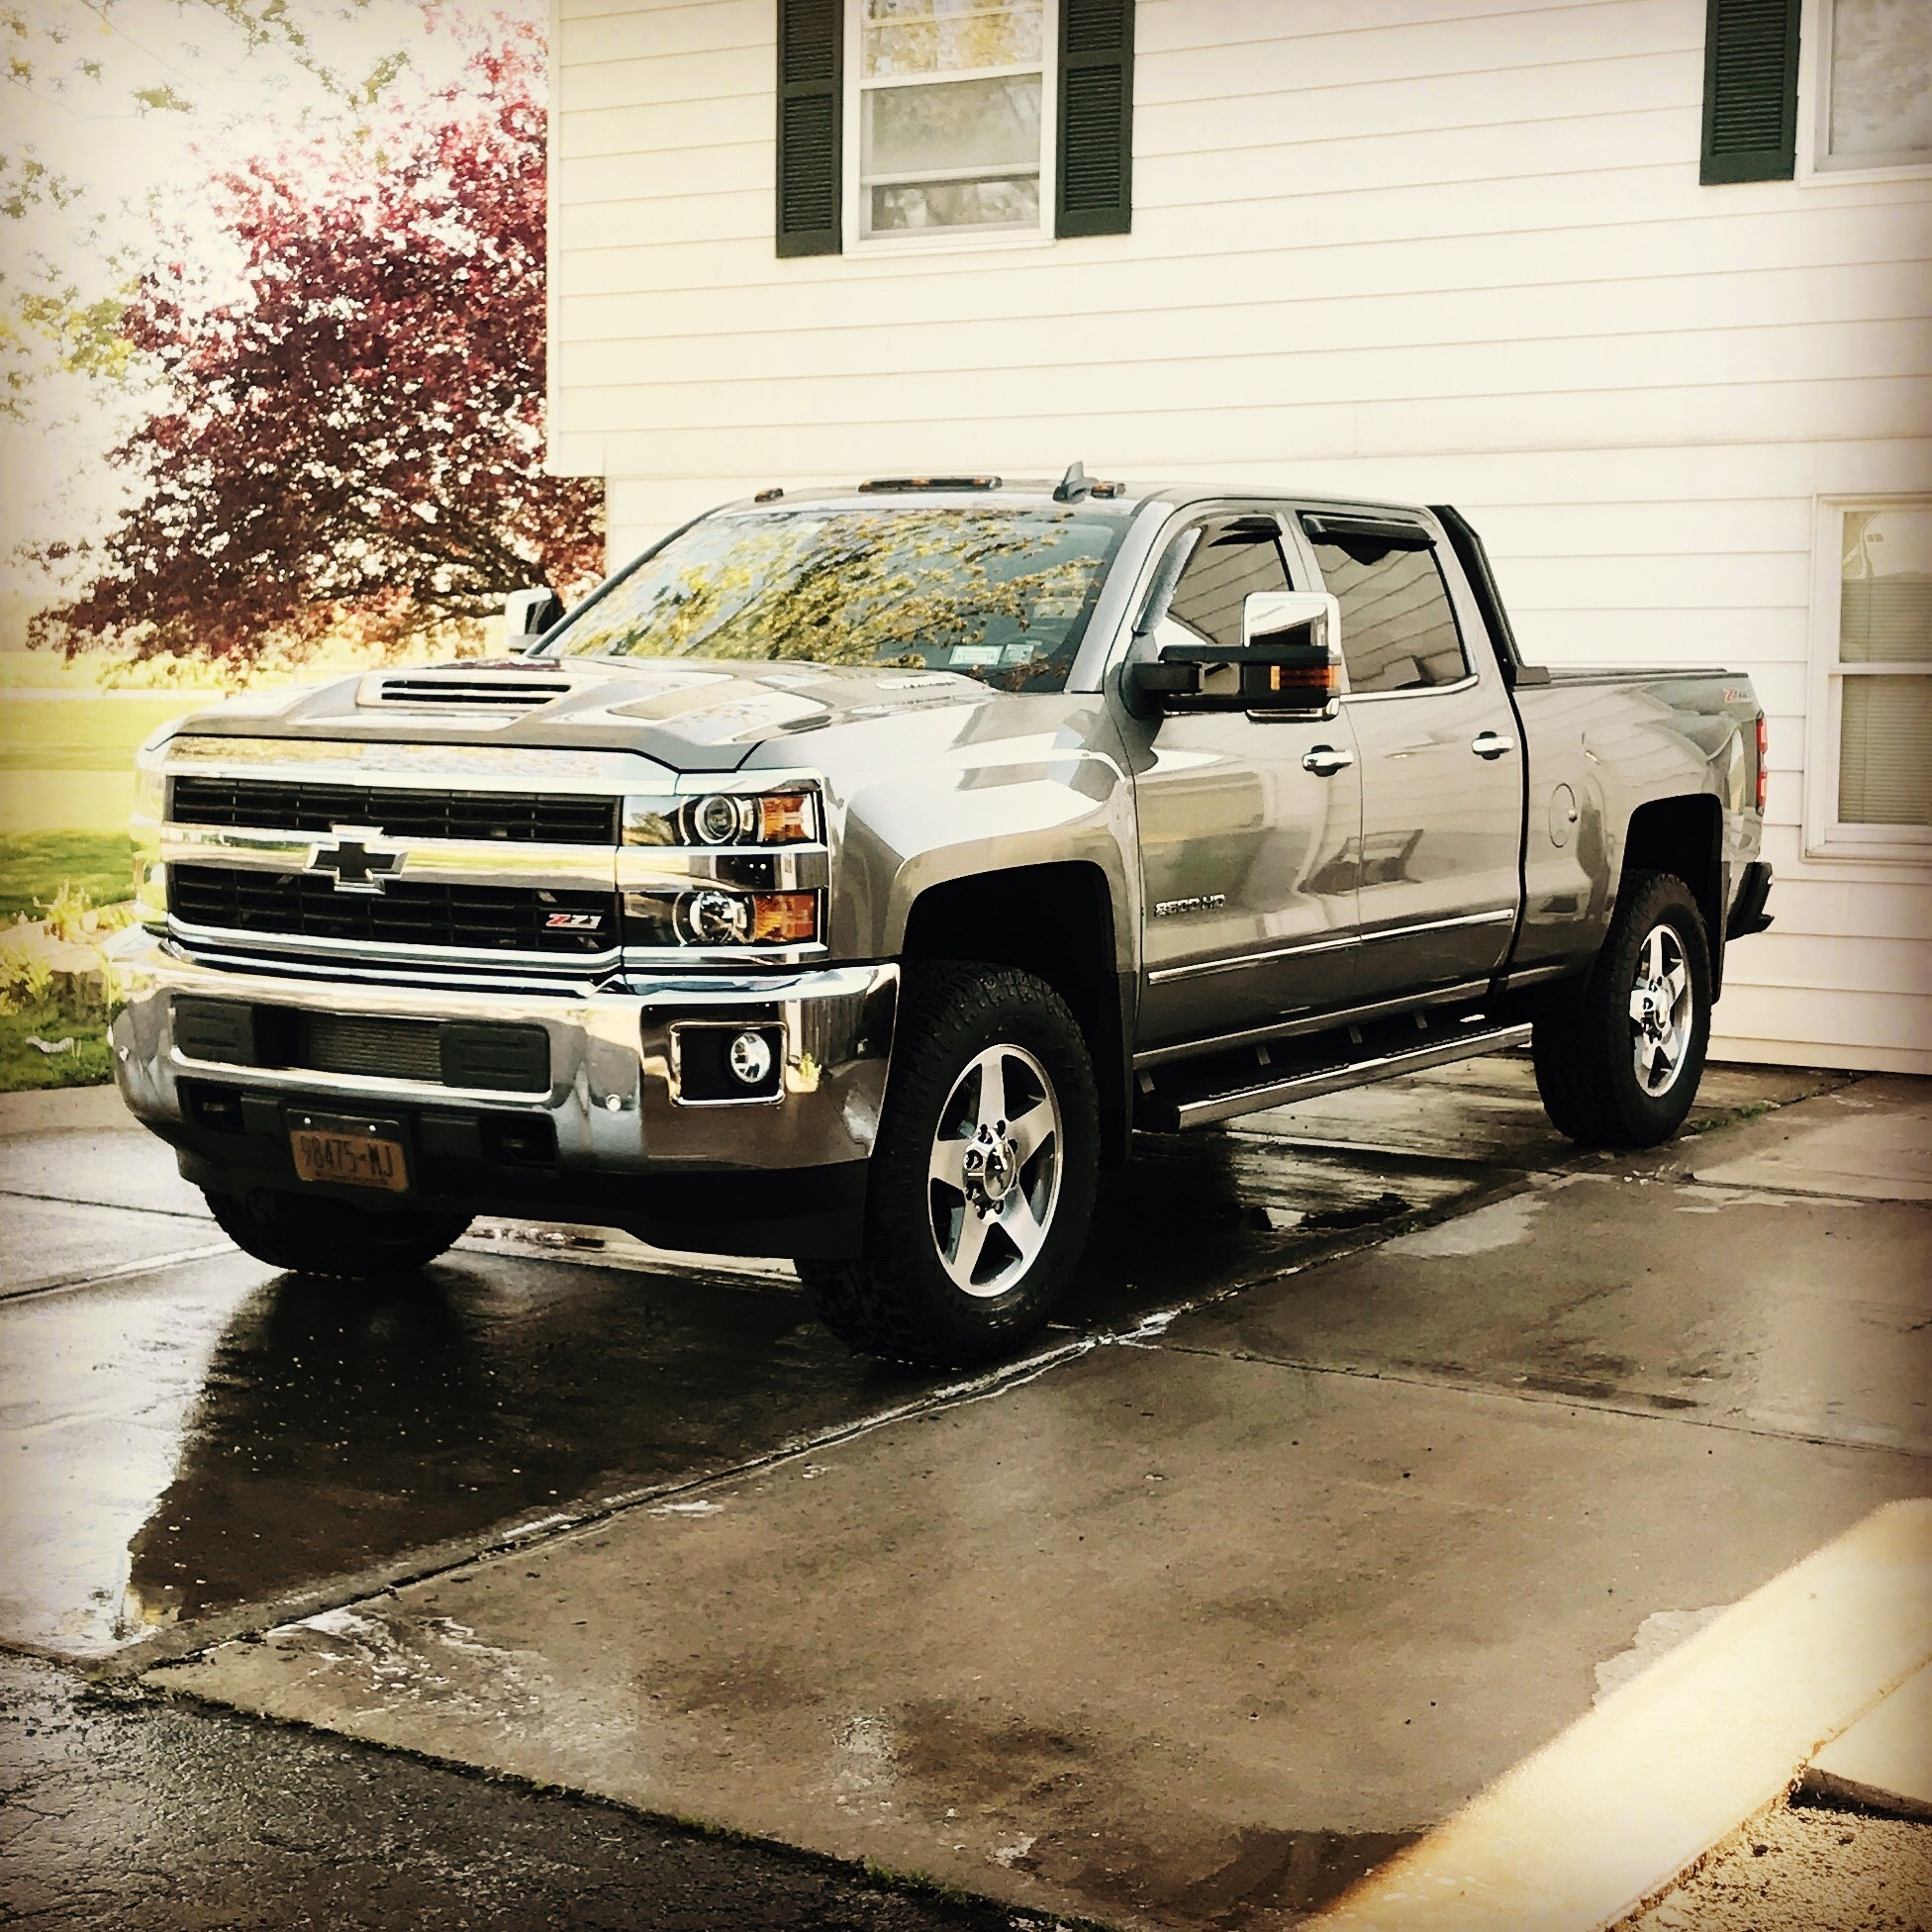 2017 L5P Picture Thread ! - Page 40 - Chevy and GMC Duramax